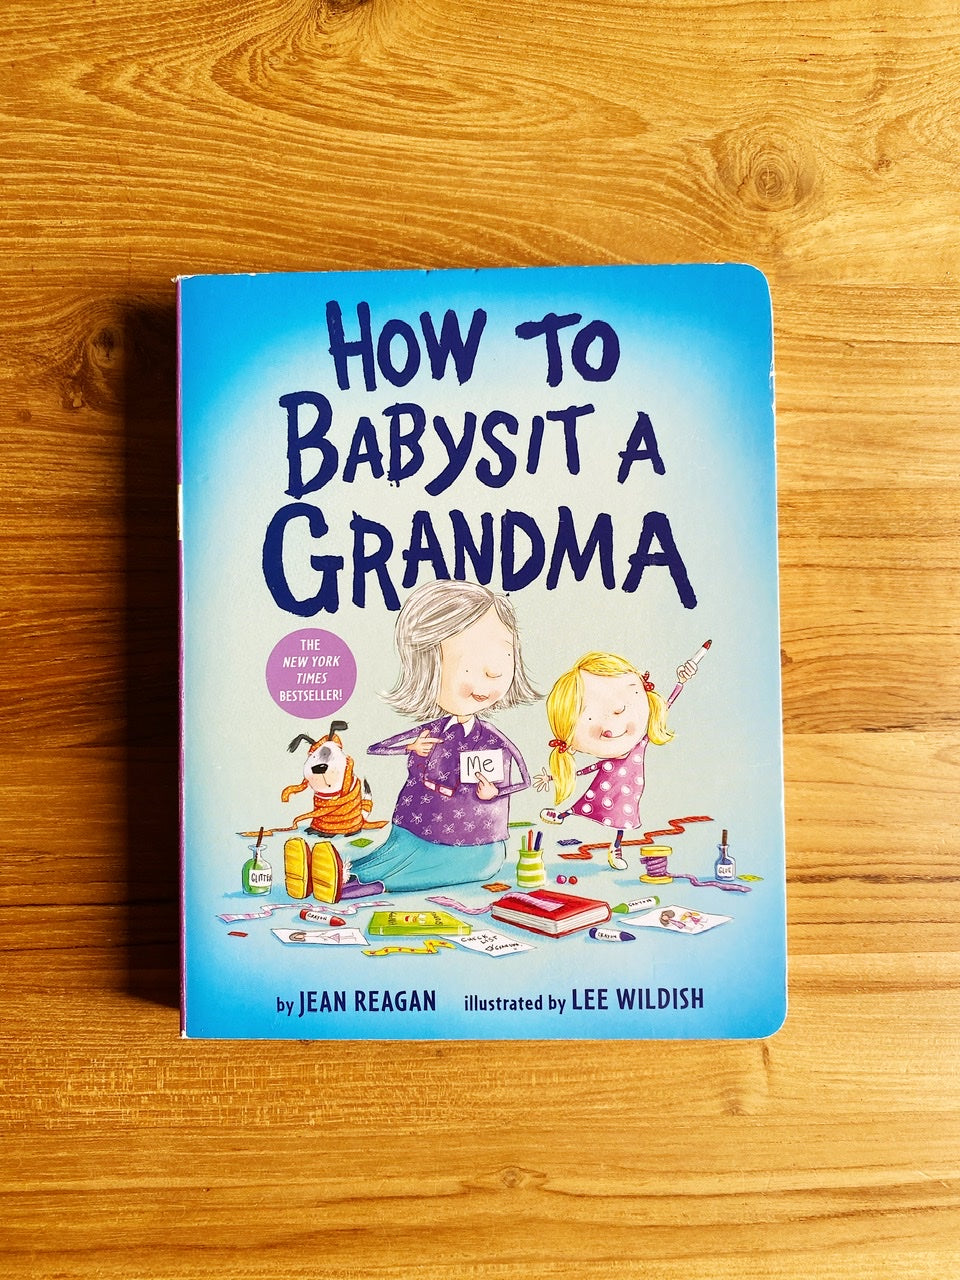 How To Babysit A Grandma by Jean Reagan & Lee Wildish